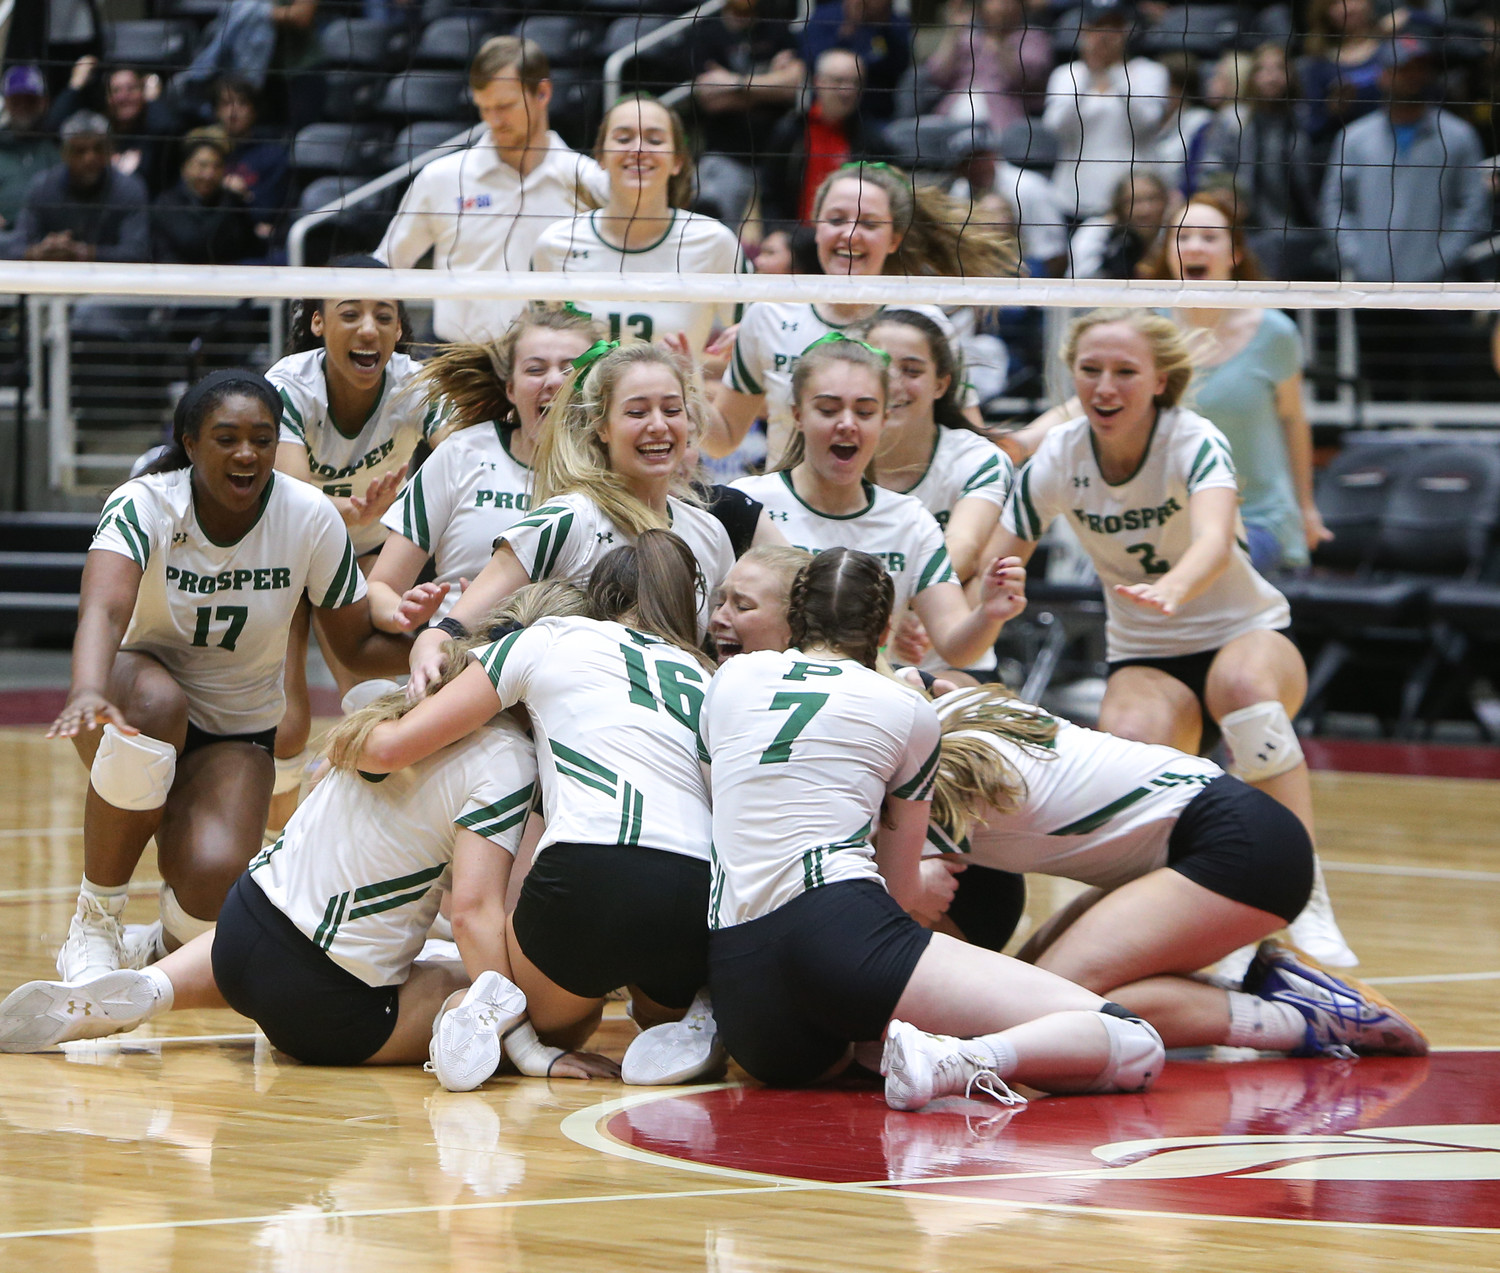 The Prosper Eagles celebrate after winning the Class 5A state volleyball title in five sets (25-18, 21-25, 18-25, 25, 23, 16-14) over Rouse High School at Curtis Culwell Center in Garland, Texas, on November 18, 2017.